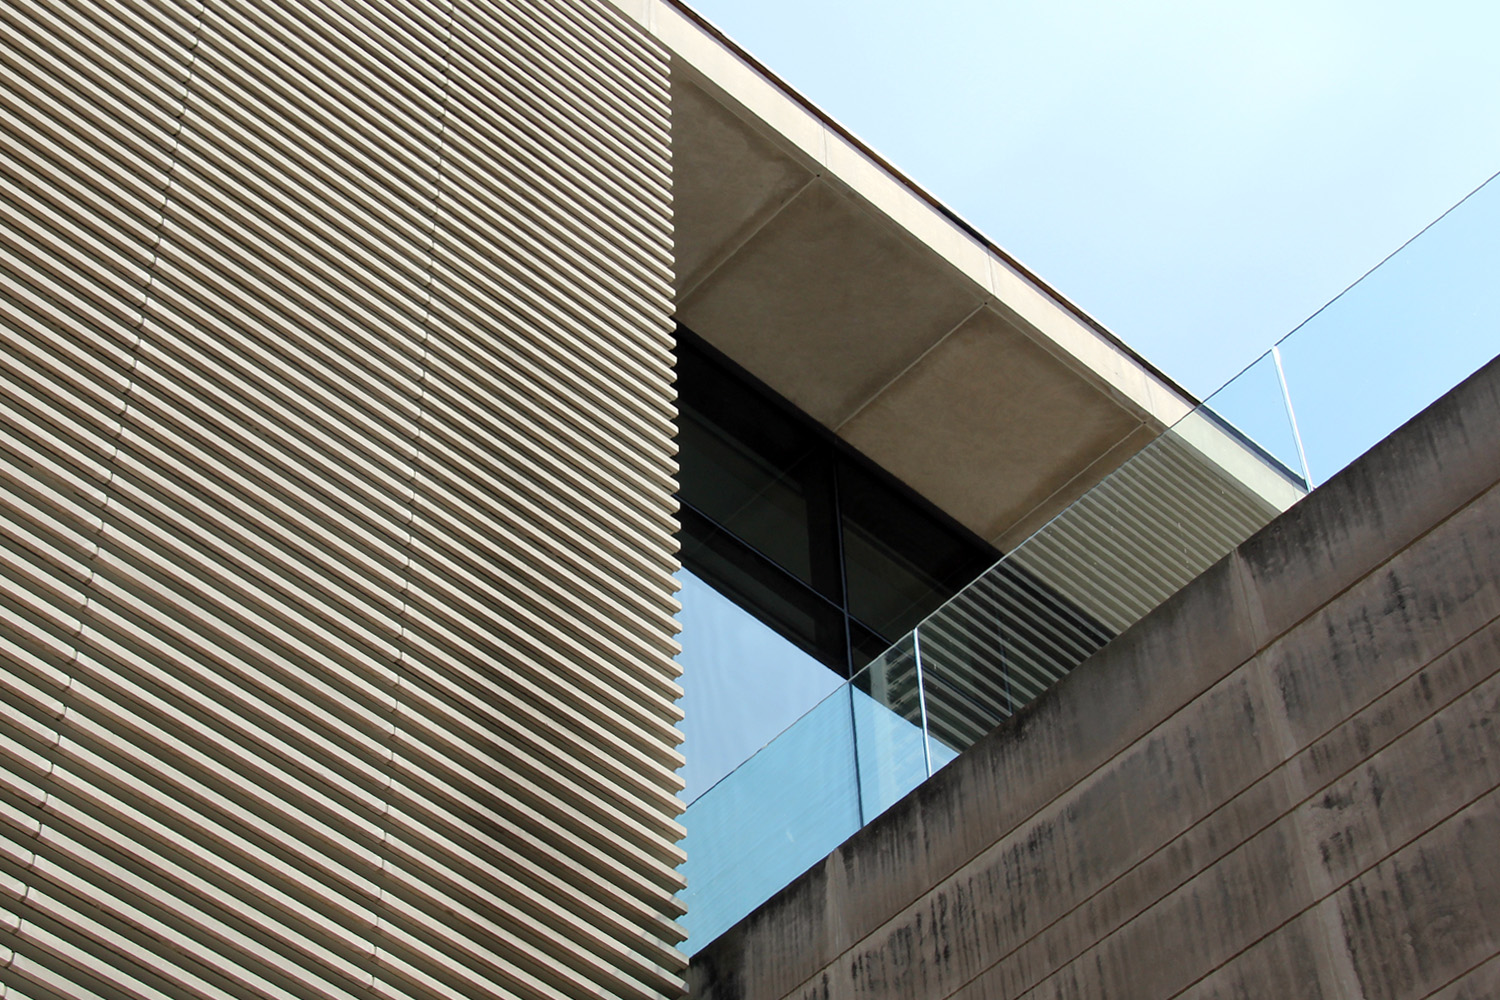 Abstract architecture shot of the exterior of the Gardiner Museum